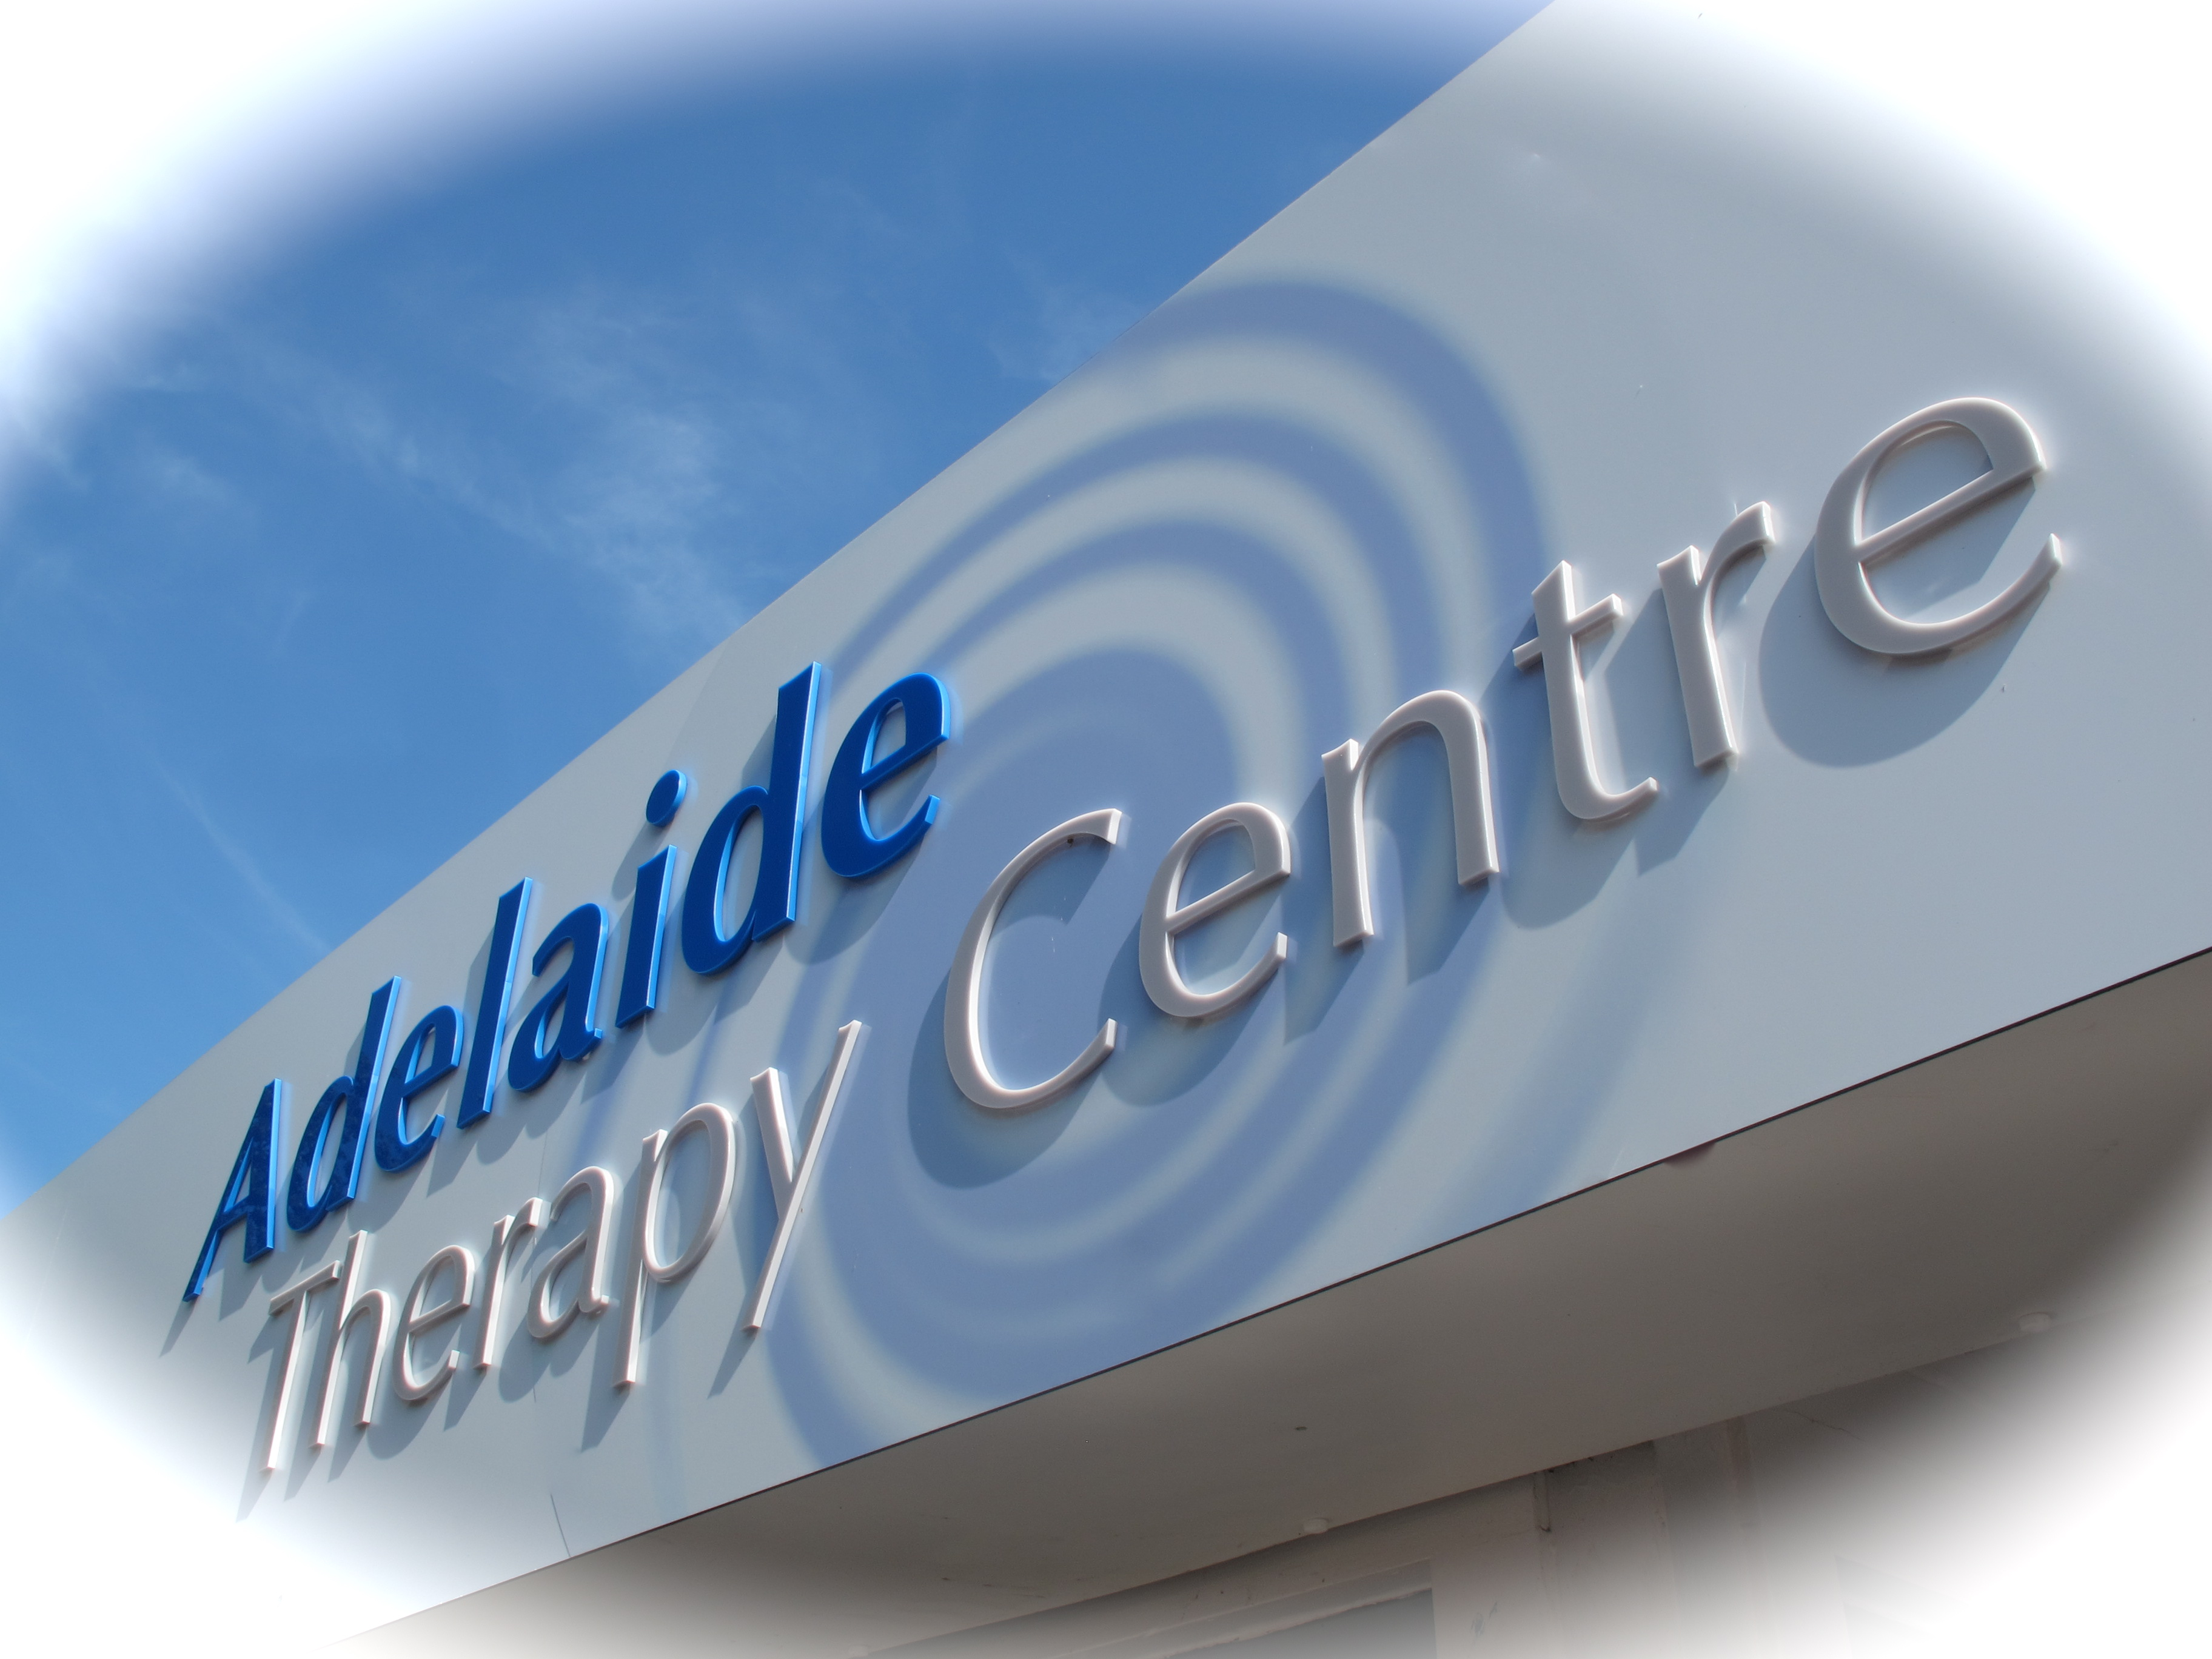 adelaidetherapy